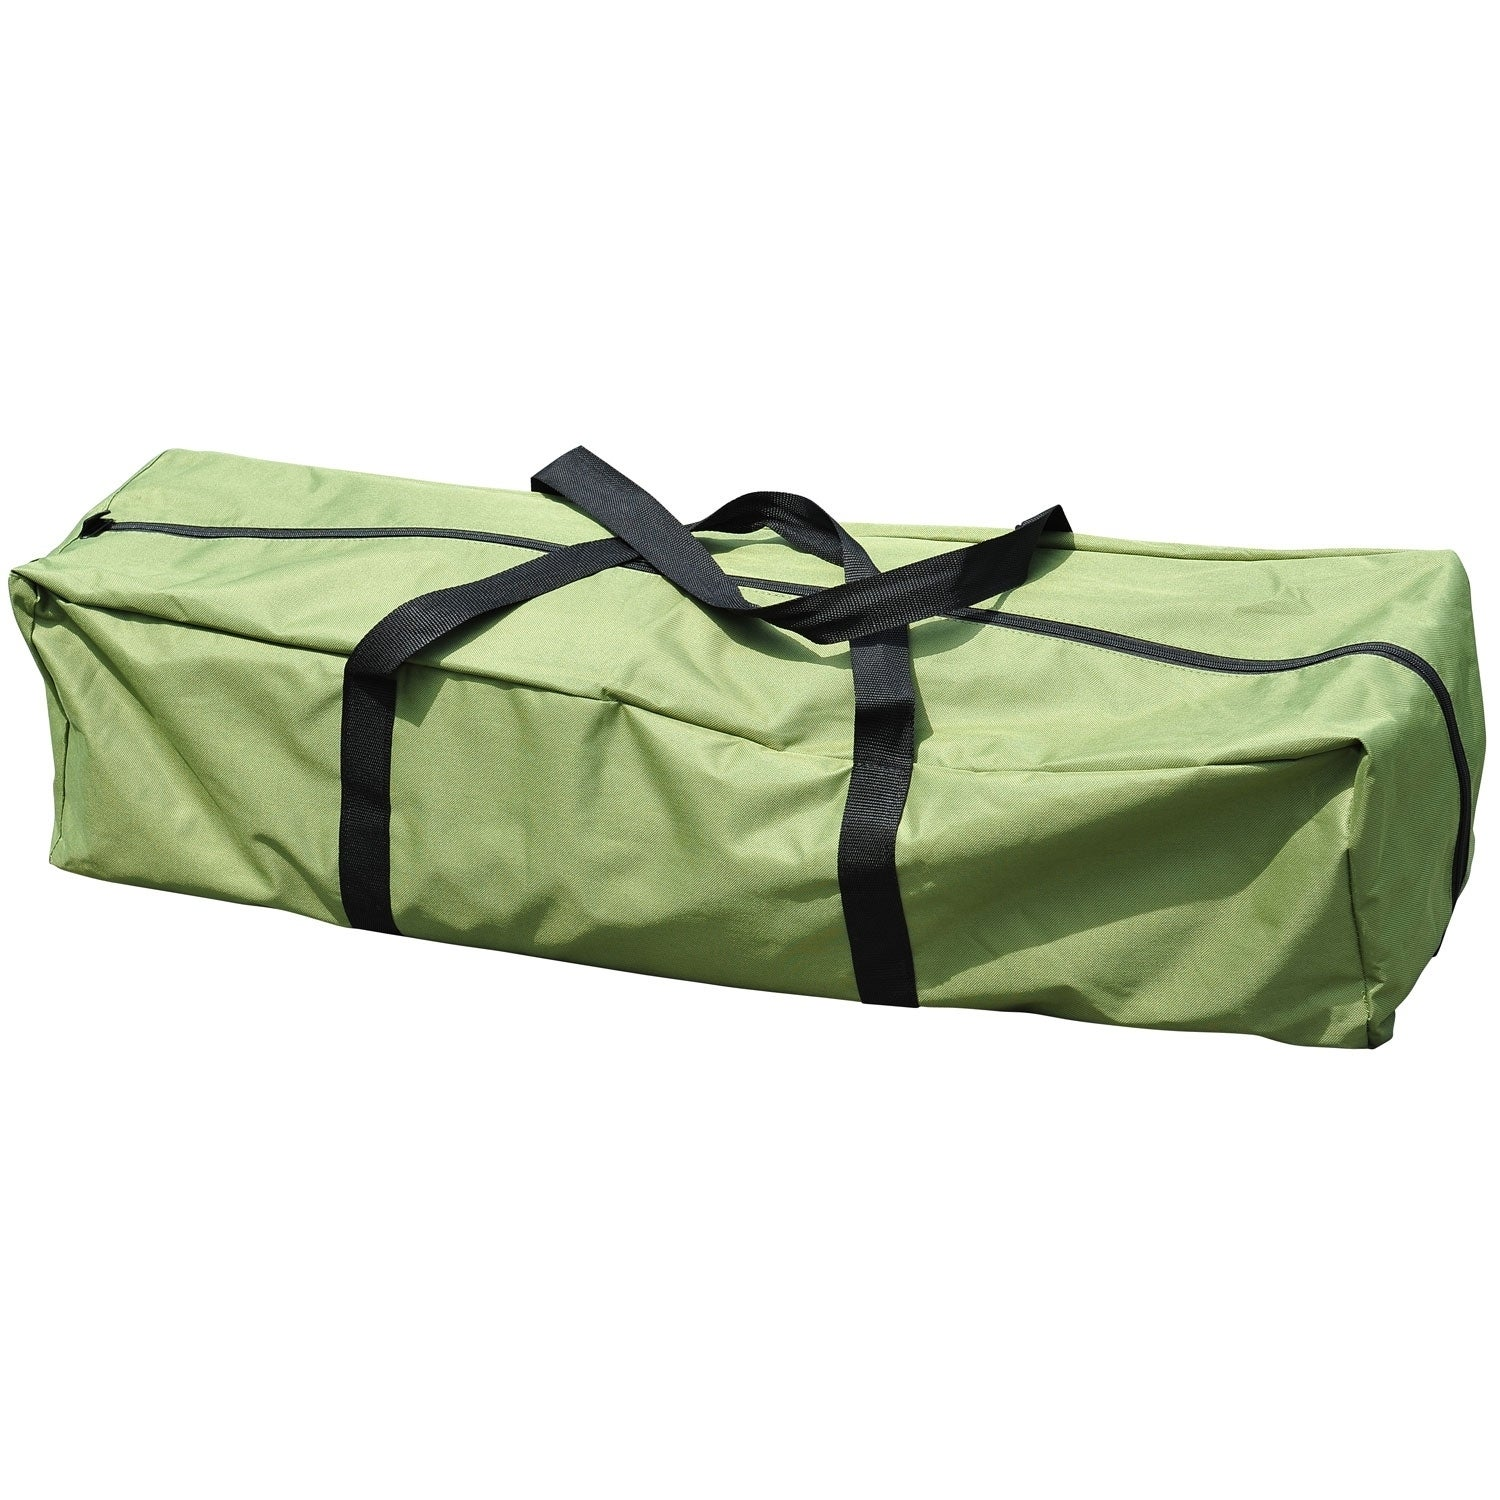 Shop Outsunny Pop Up Tent Cot With Air Mattress And Sleeping Bag